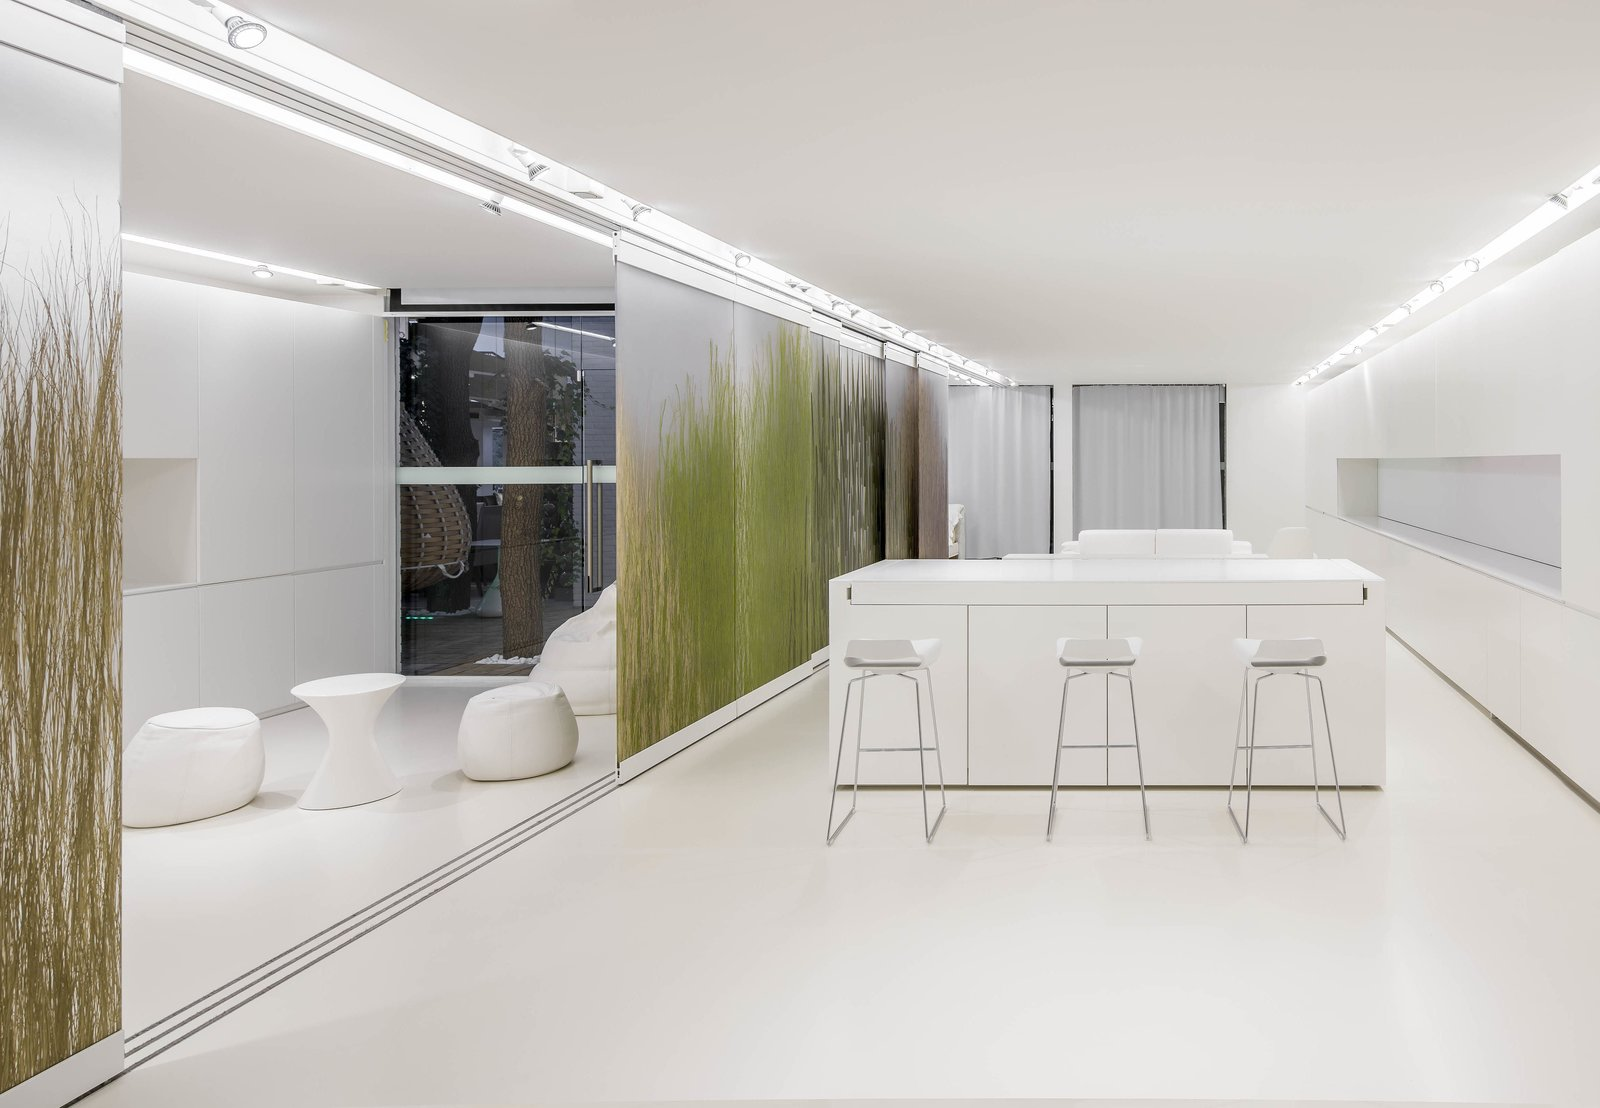 A Vision of the 'Apartment of the Future' From Poland